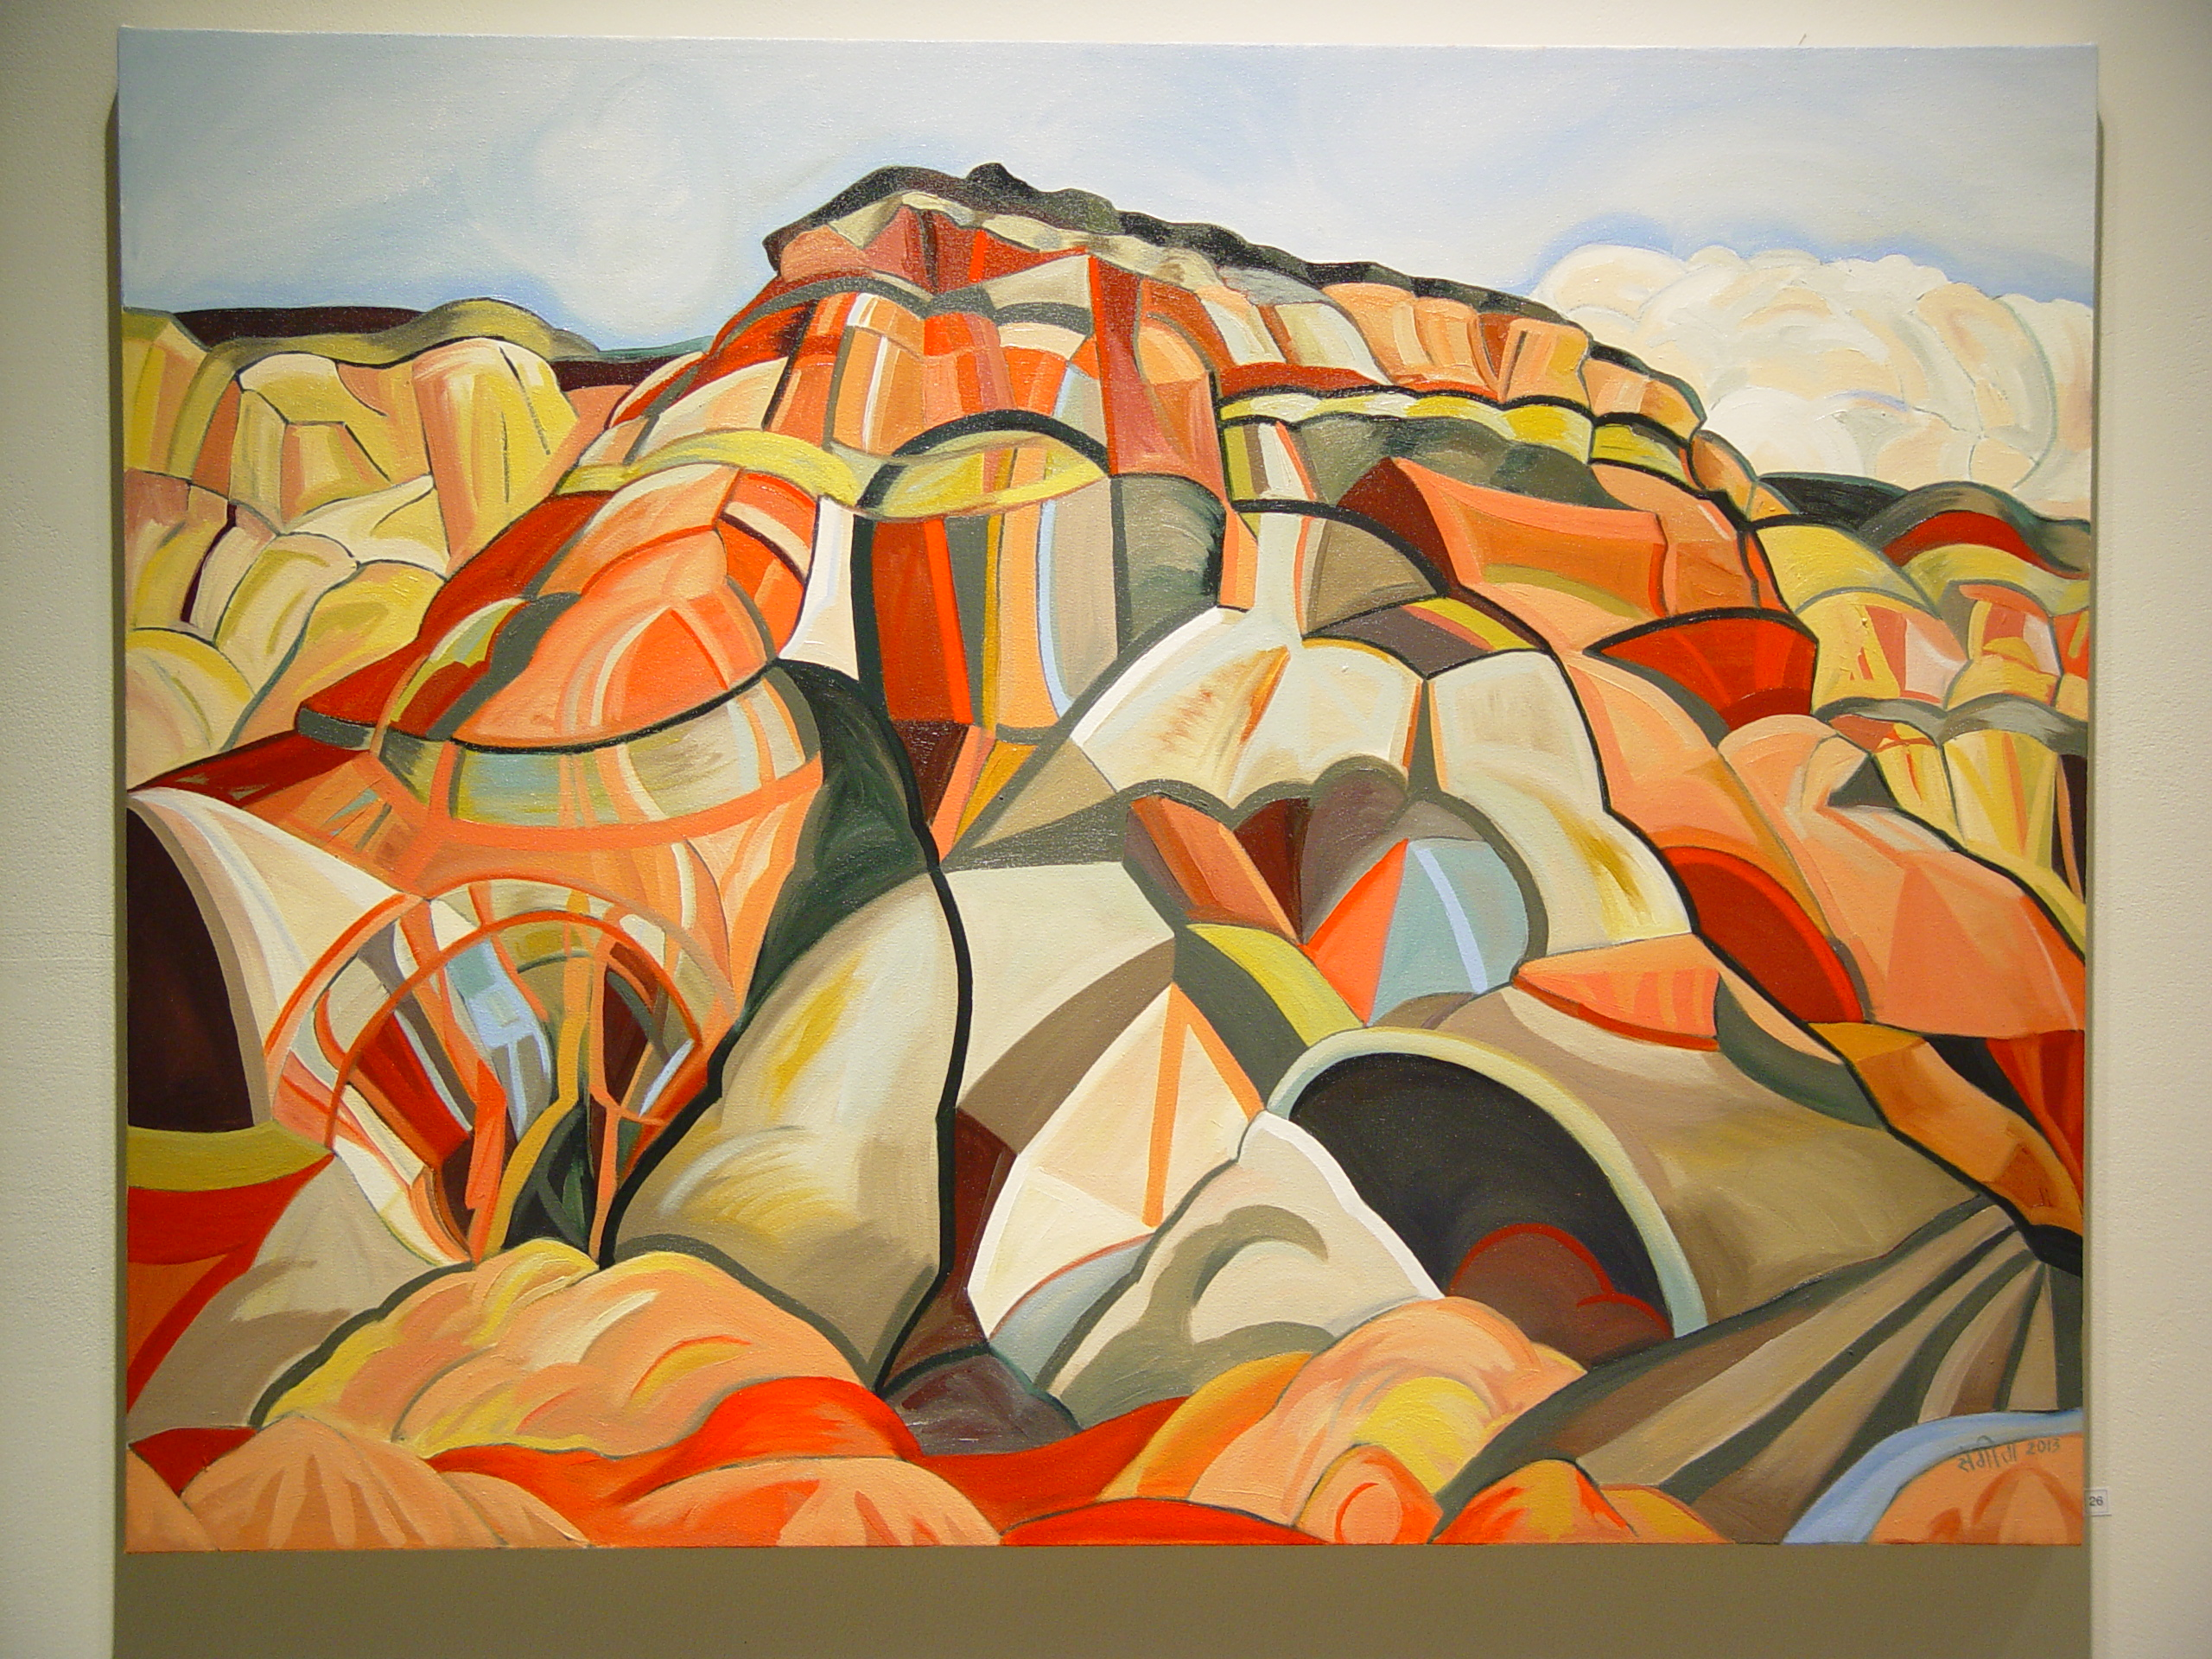 27. Burled Mountain, River, Sky, 2014